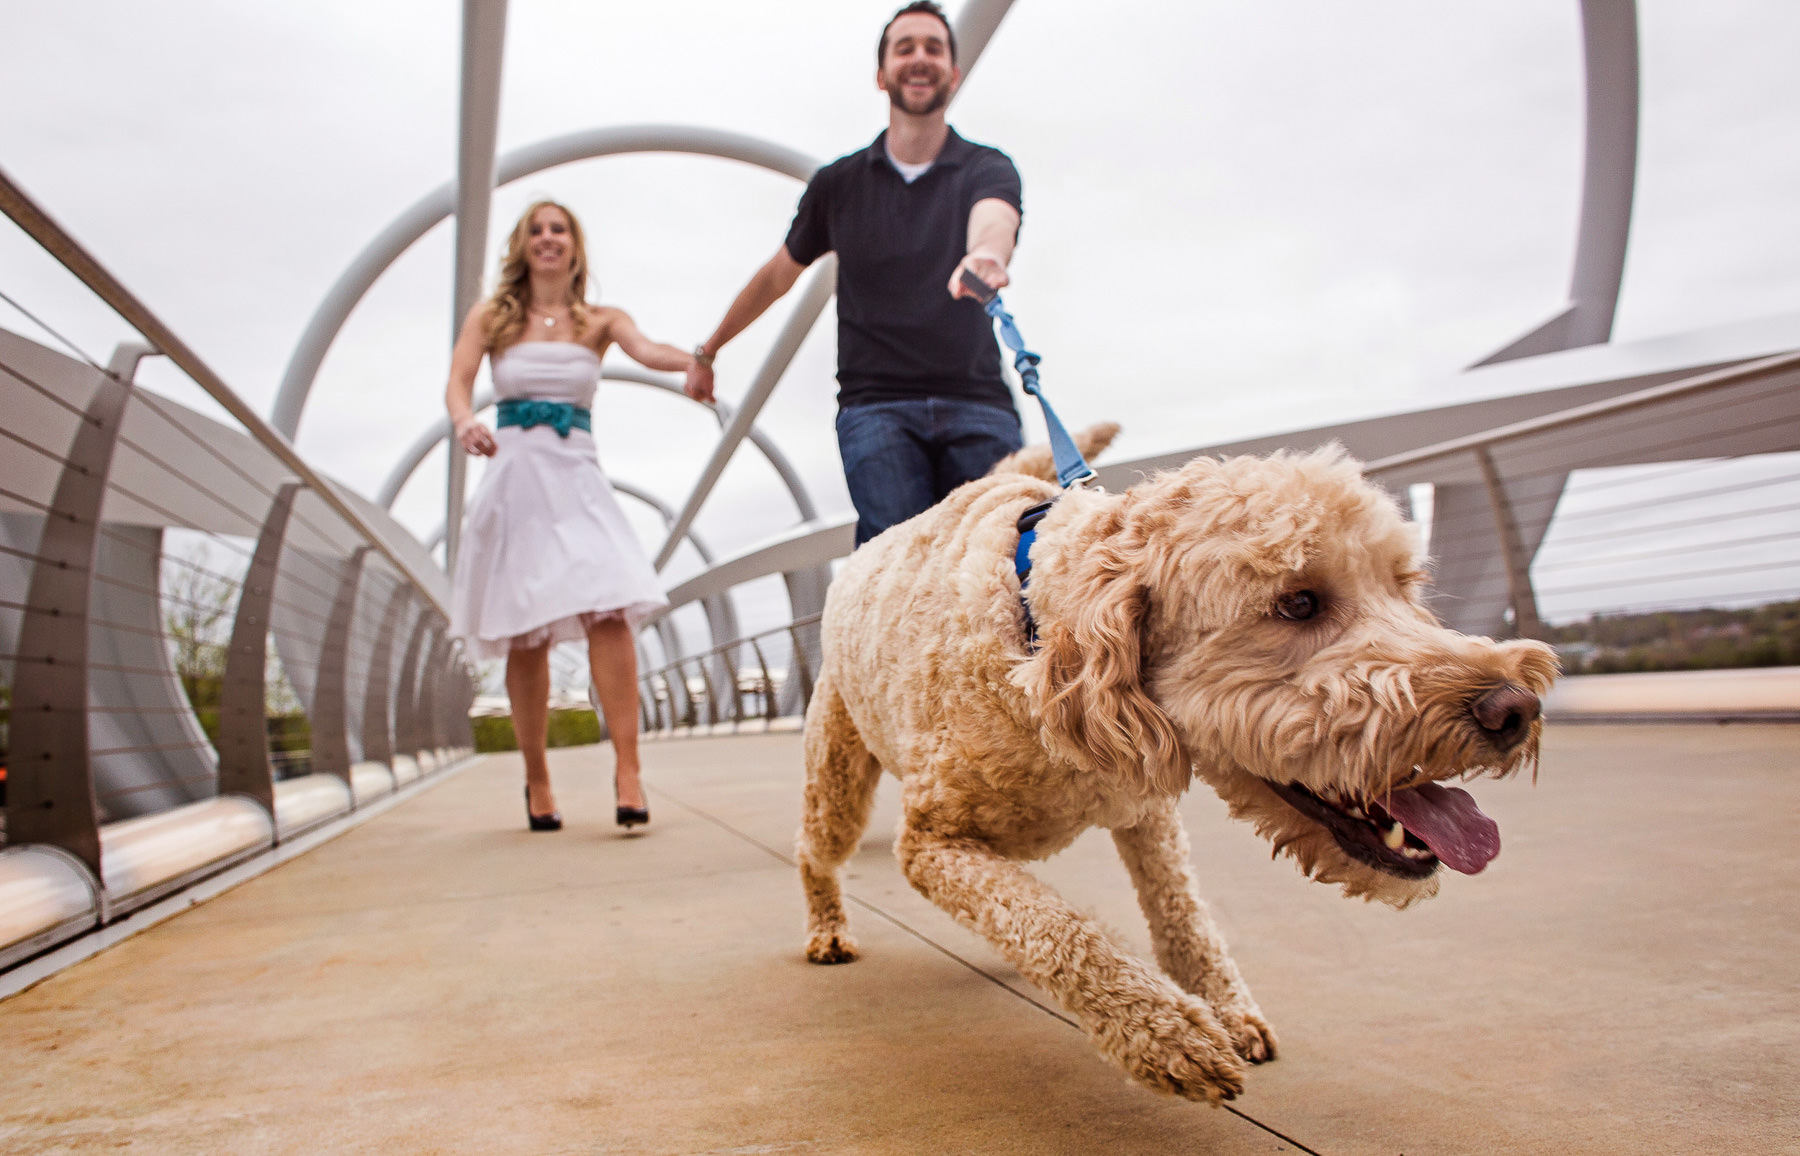 Funny engagement photo with dog pulling at leash - photo by Ken Pak